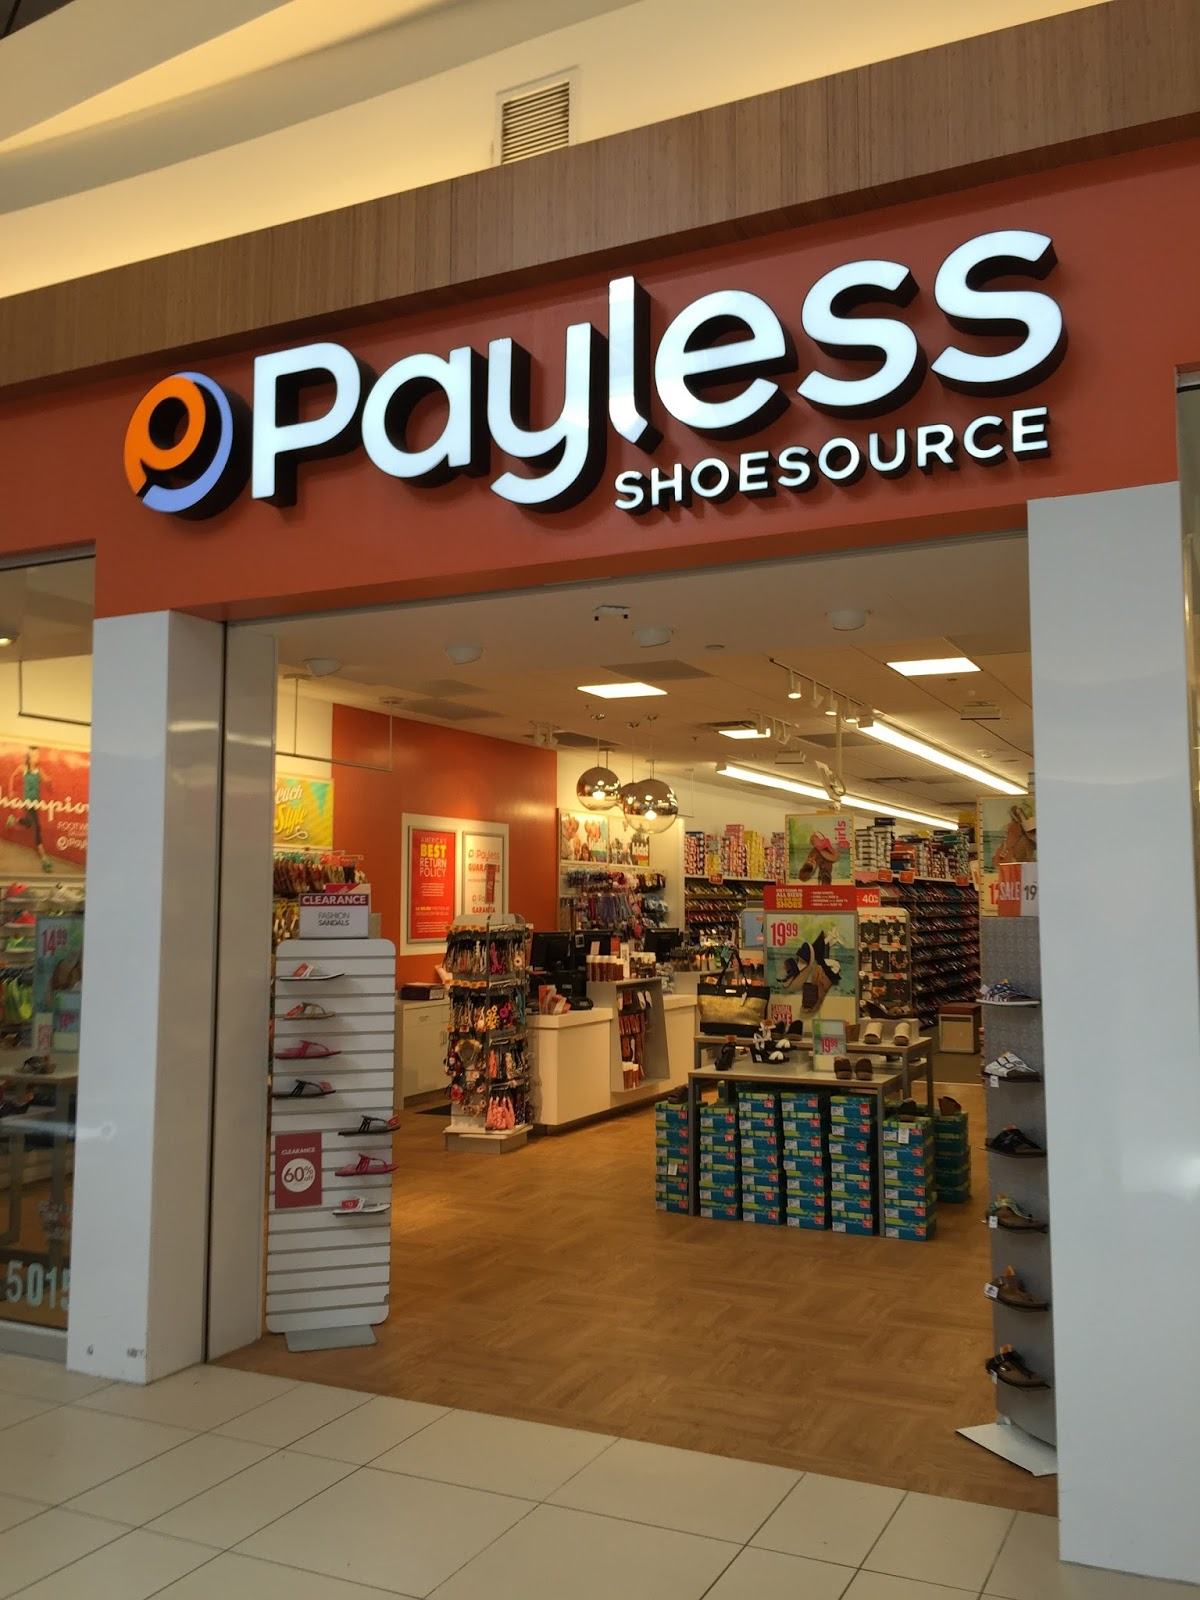 Payless Car Rental Coupon Codes, Promos & Sales. Payless Car Rental coupon codes and sales, just follow this link to the website to browse their current offerings.